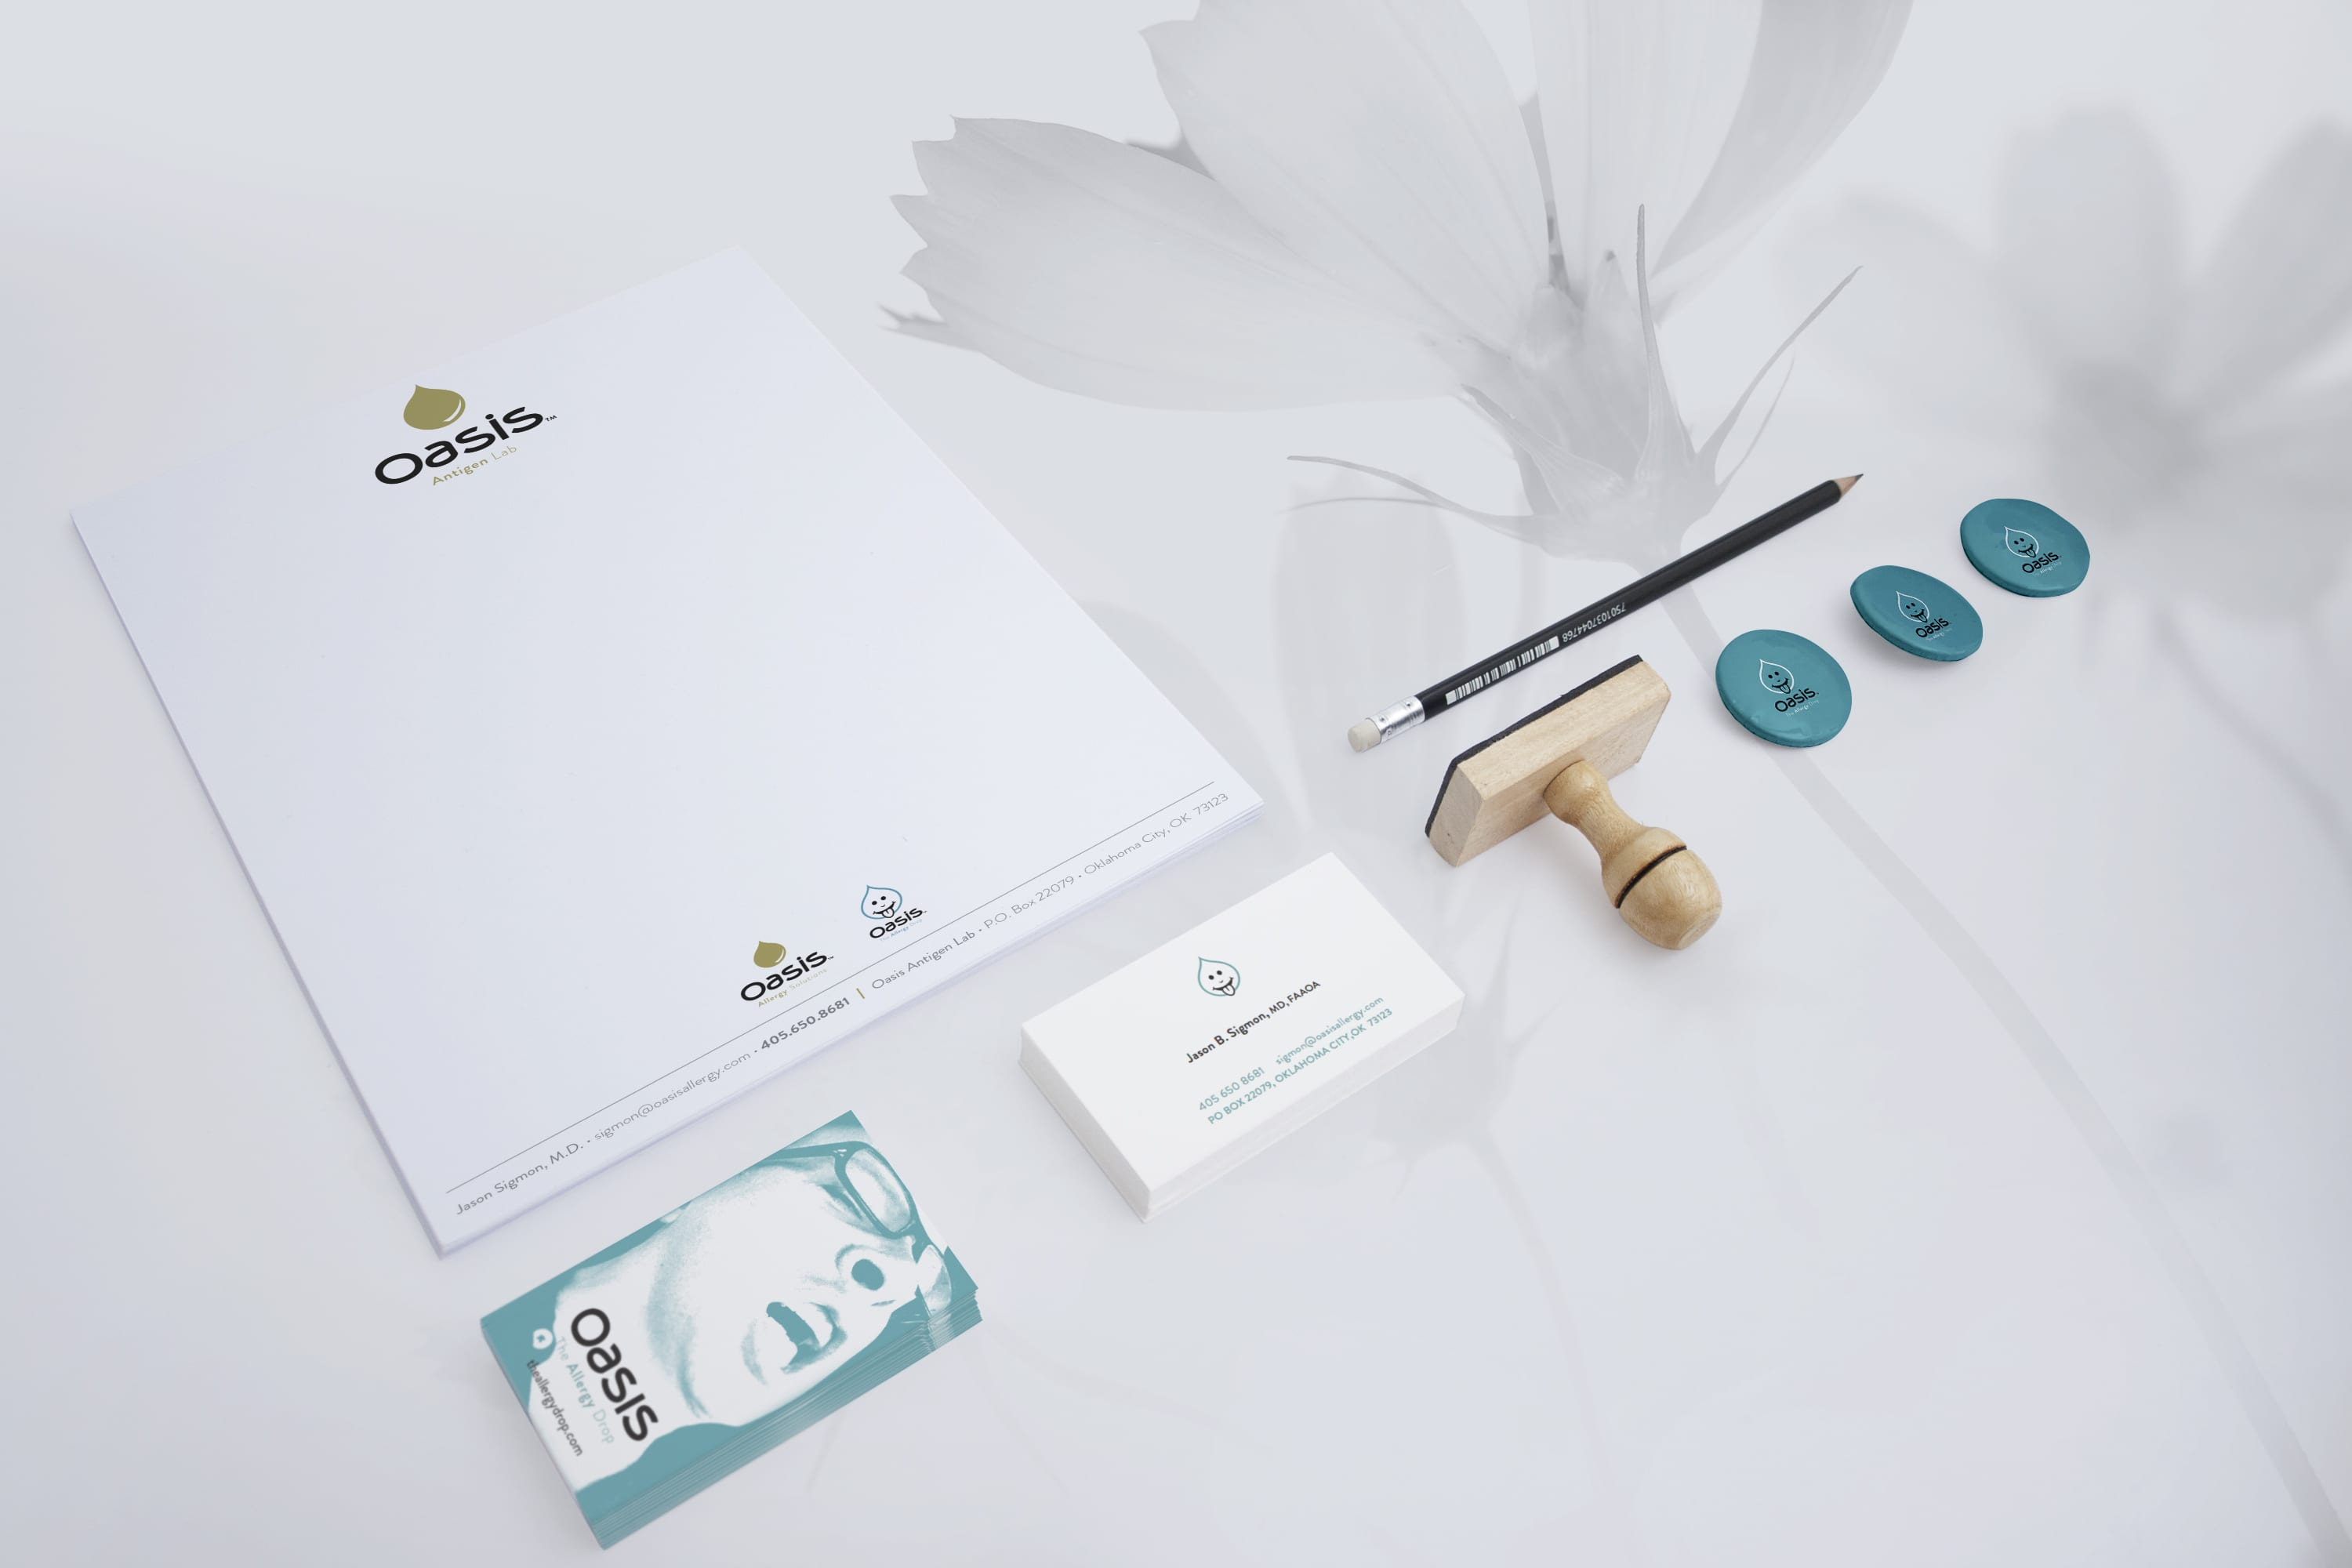 Oasis Allergy Stationary by Liquid Media